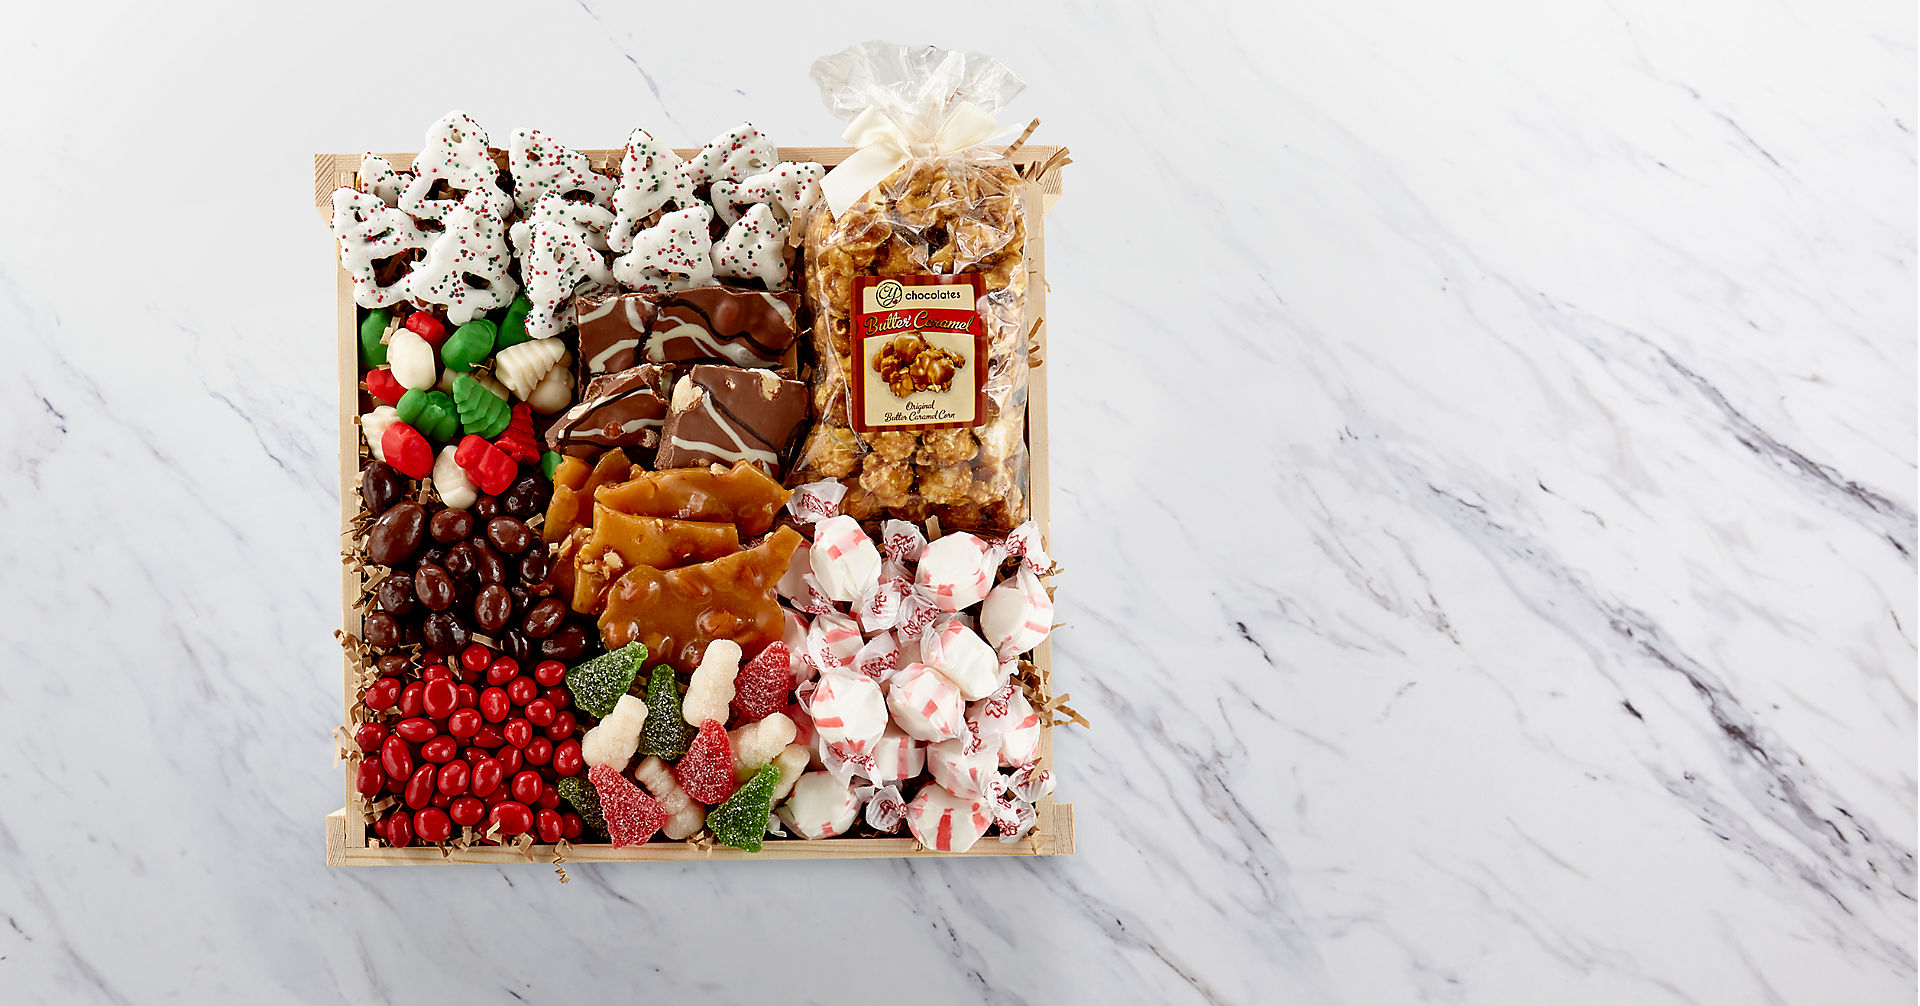 Holiday Delights Chocolate & Sweets Gourmet Gift Basket - BETTER - Image 2 Of 2